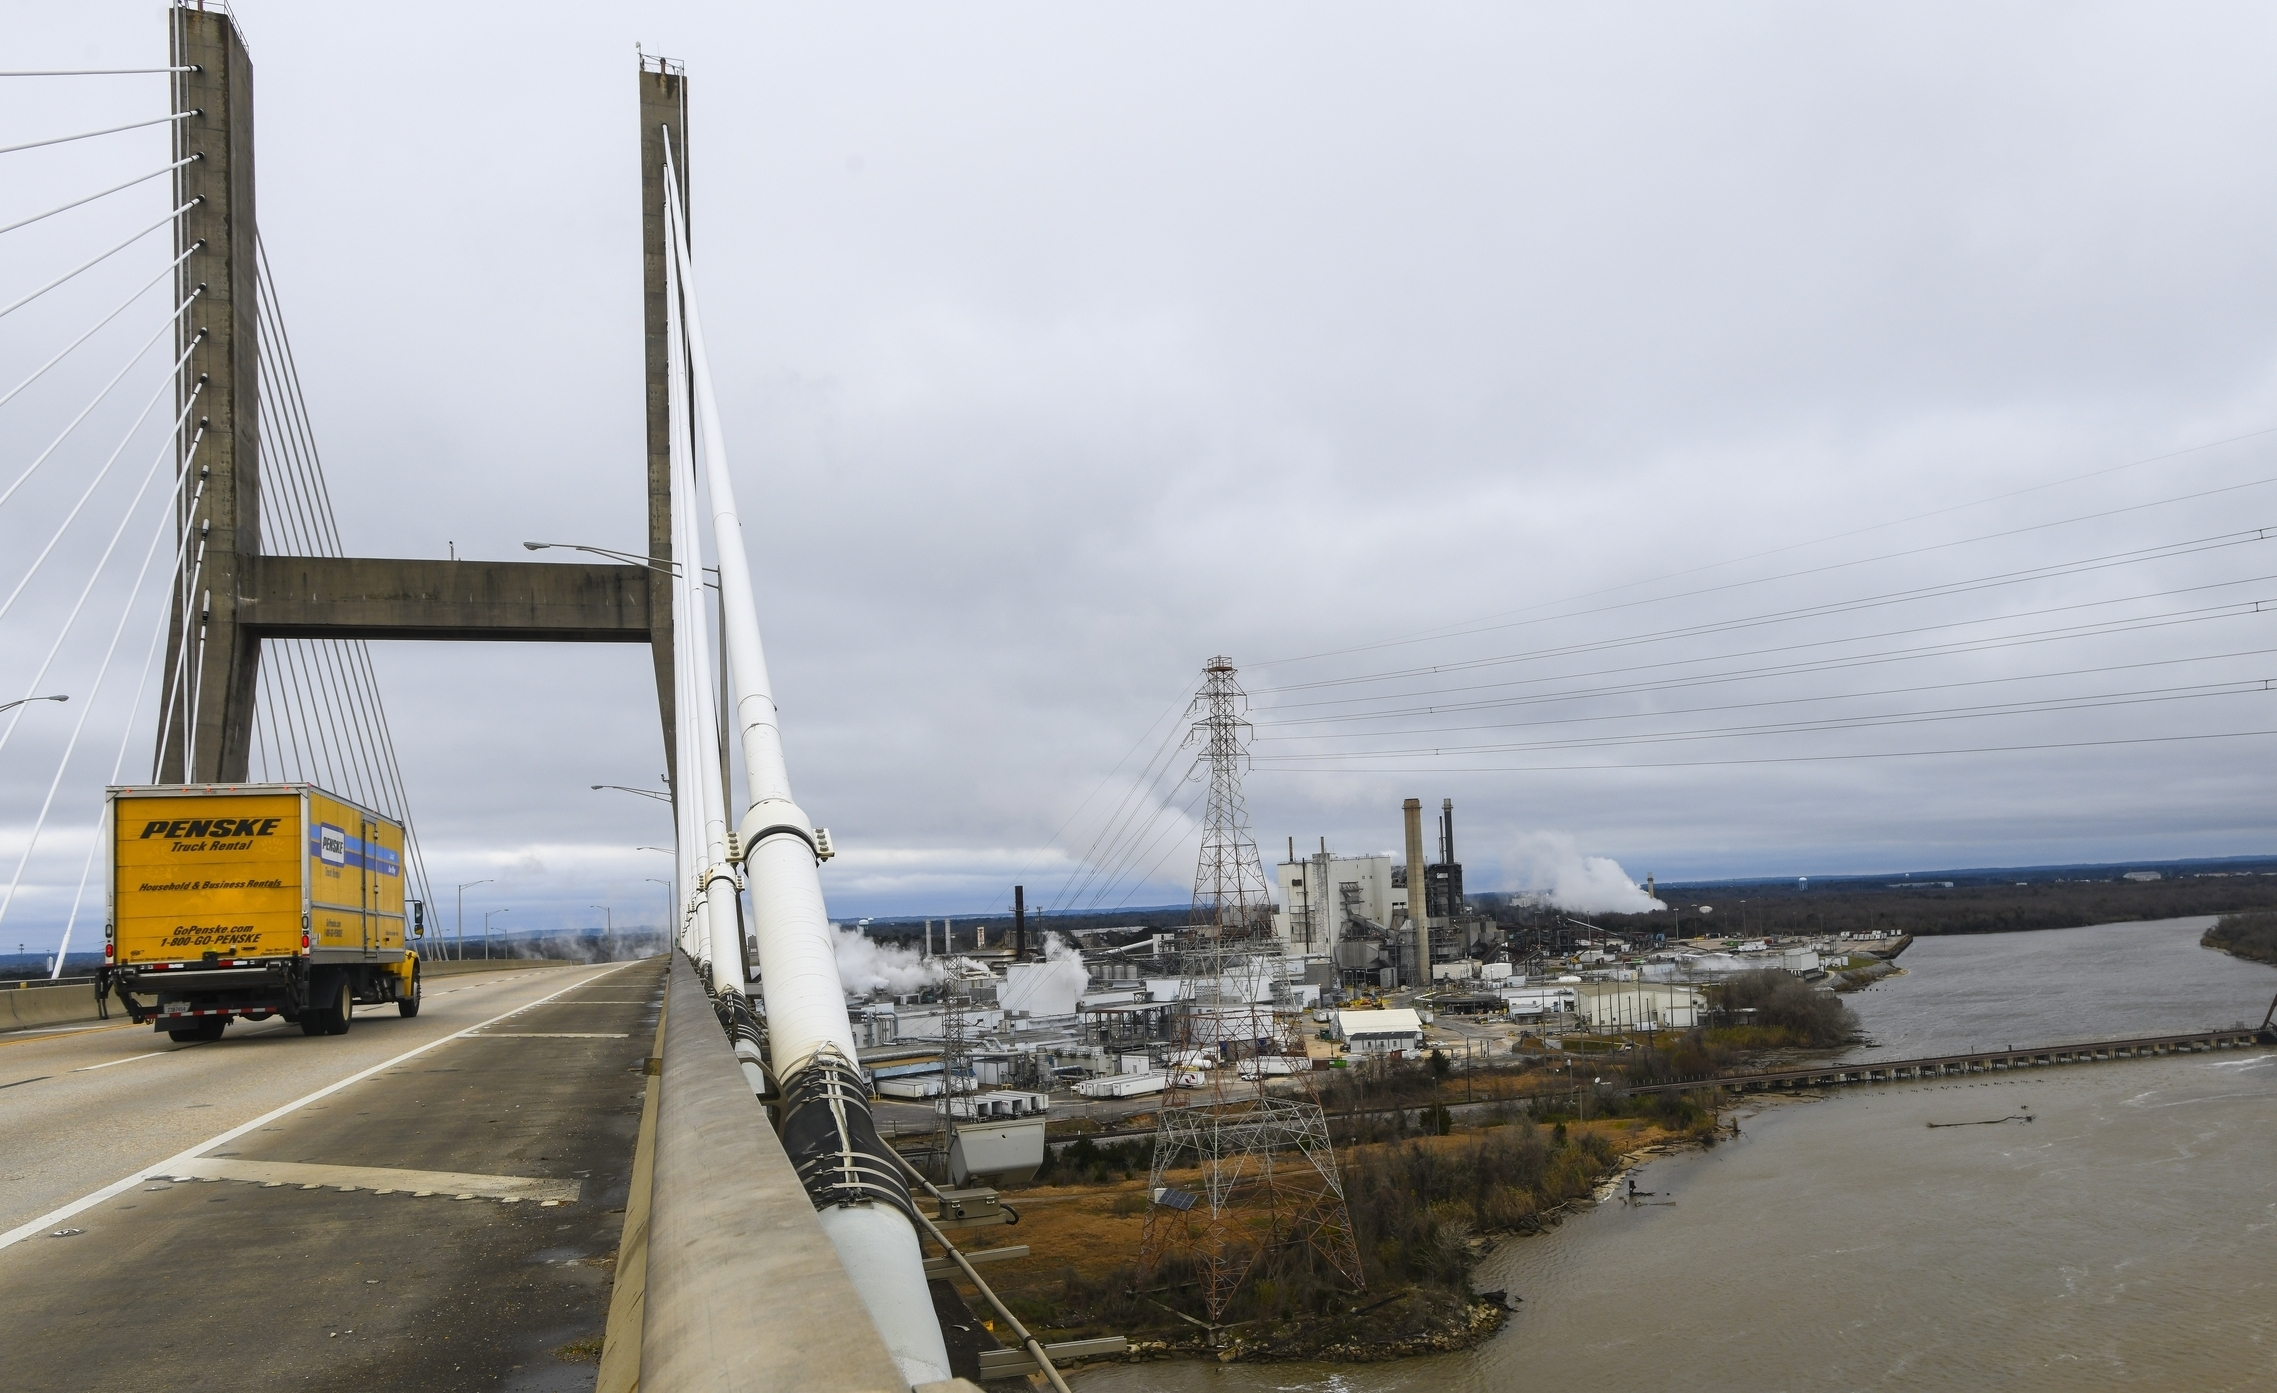 Industrial development occupies the Mobile Riverfront under the Cochrane-Africatown bridge near Mobile, Ala., on Tuesday, Jan. 29, 2019. Industrial development choked off access to the Mobile River and Chickasaw Creek, where generations in Africatown caught crabs and fish. Factories now occupy land that once held modest homes surrounded by gardens, fruit trees and clucking chickens. The population has plummeted; many of the remaining homes are boarded up and rotting. (AP Photo/Julie Bennett)